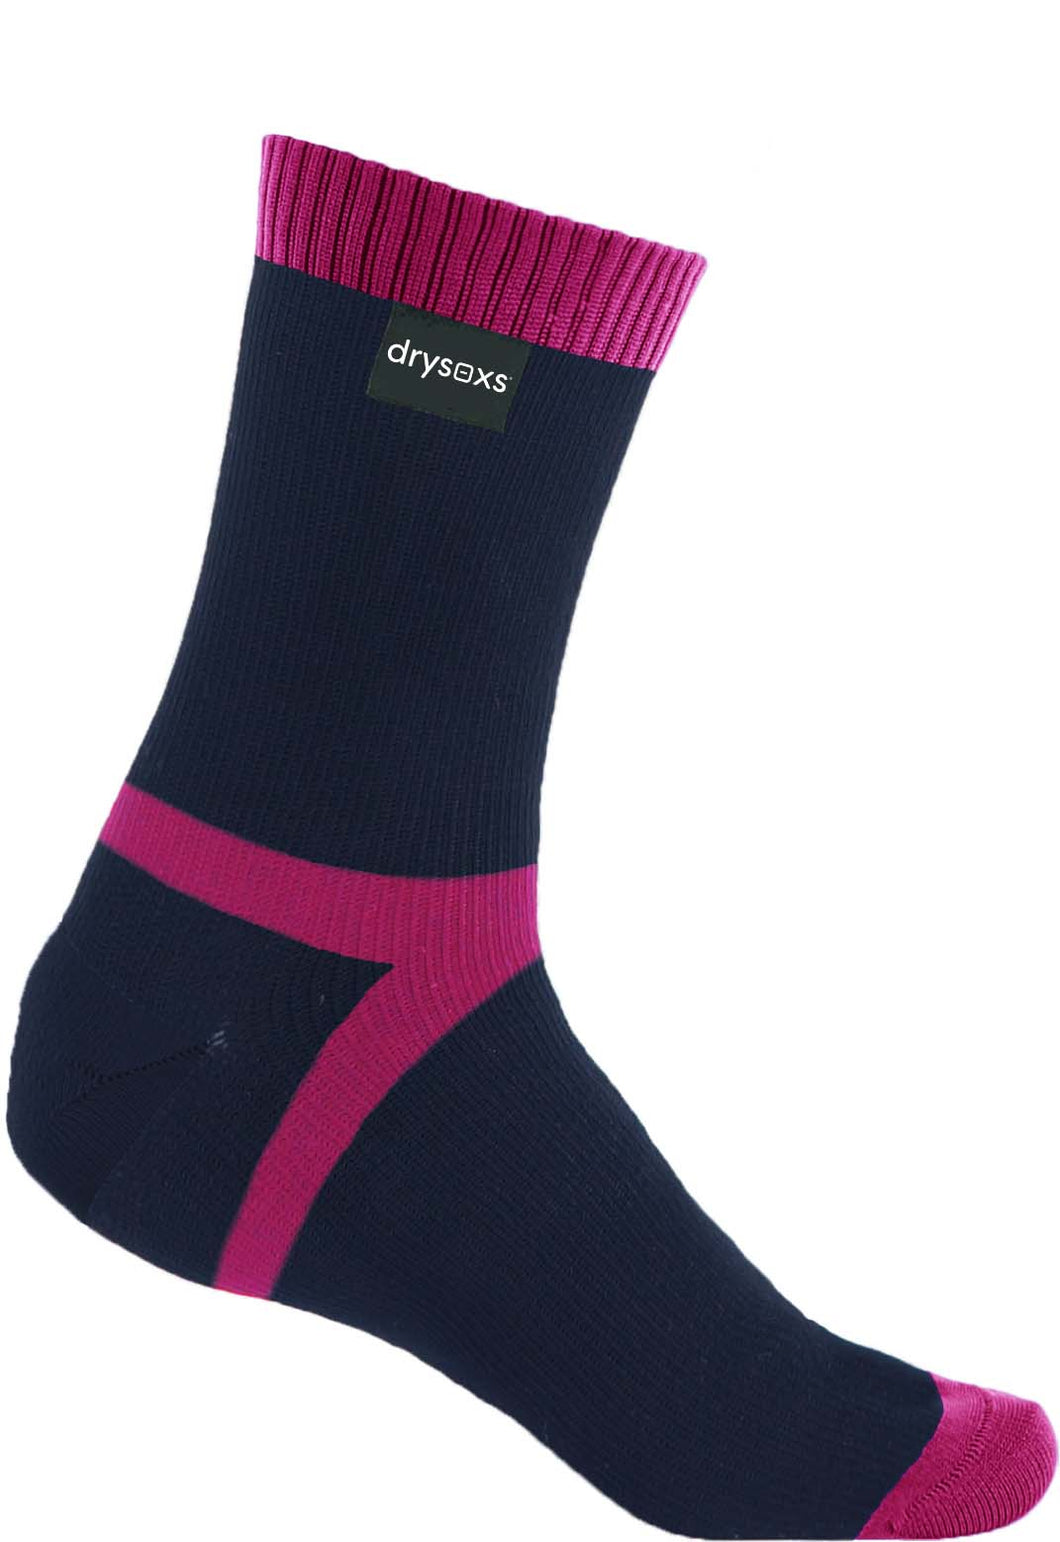 Double Cotton Socks Mid Length - Navy-Pink Stripe